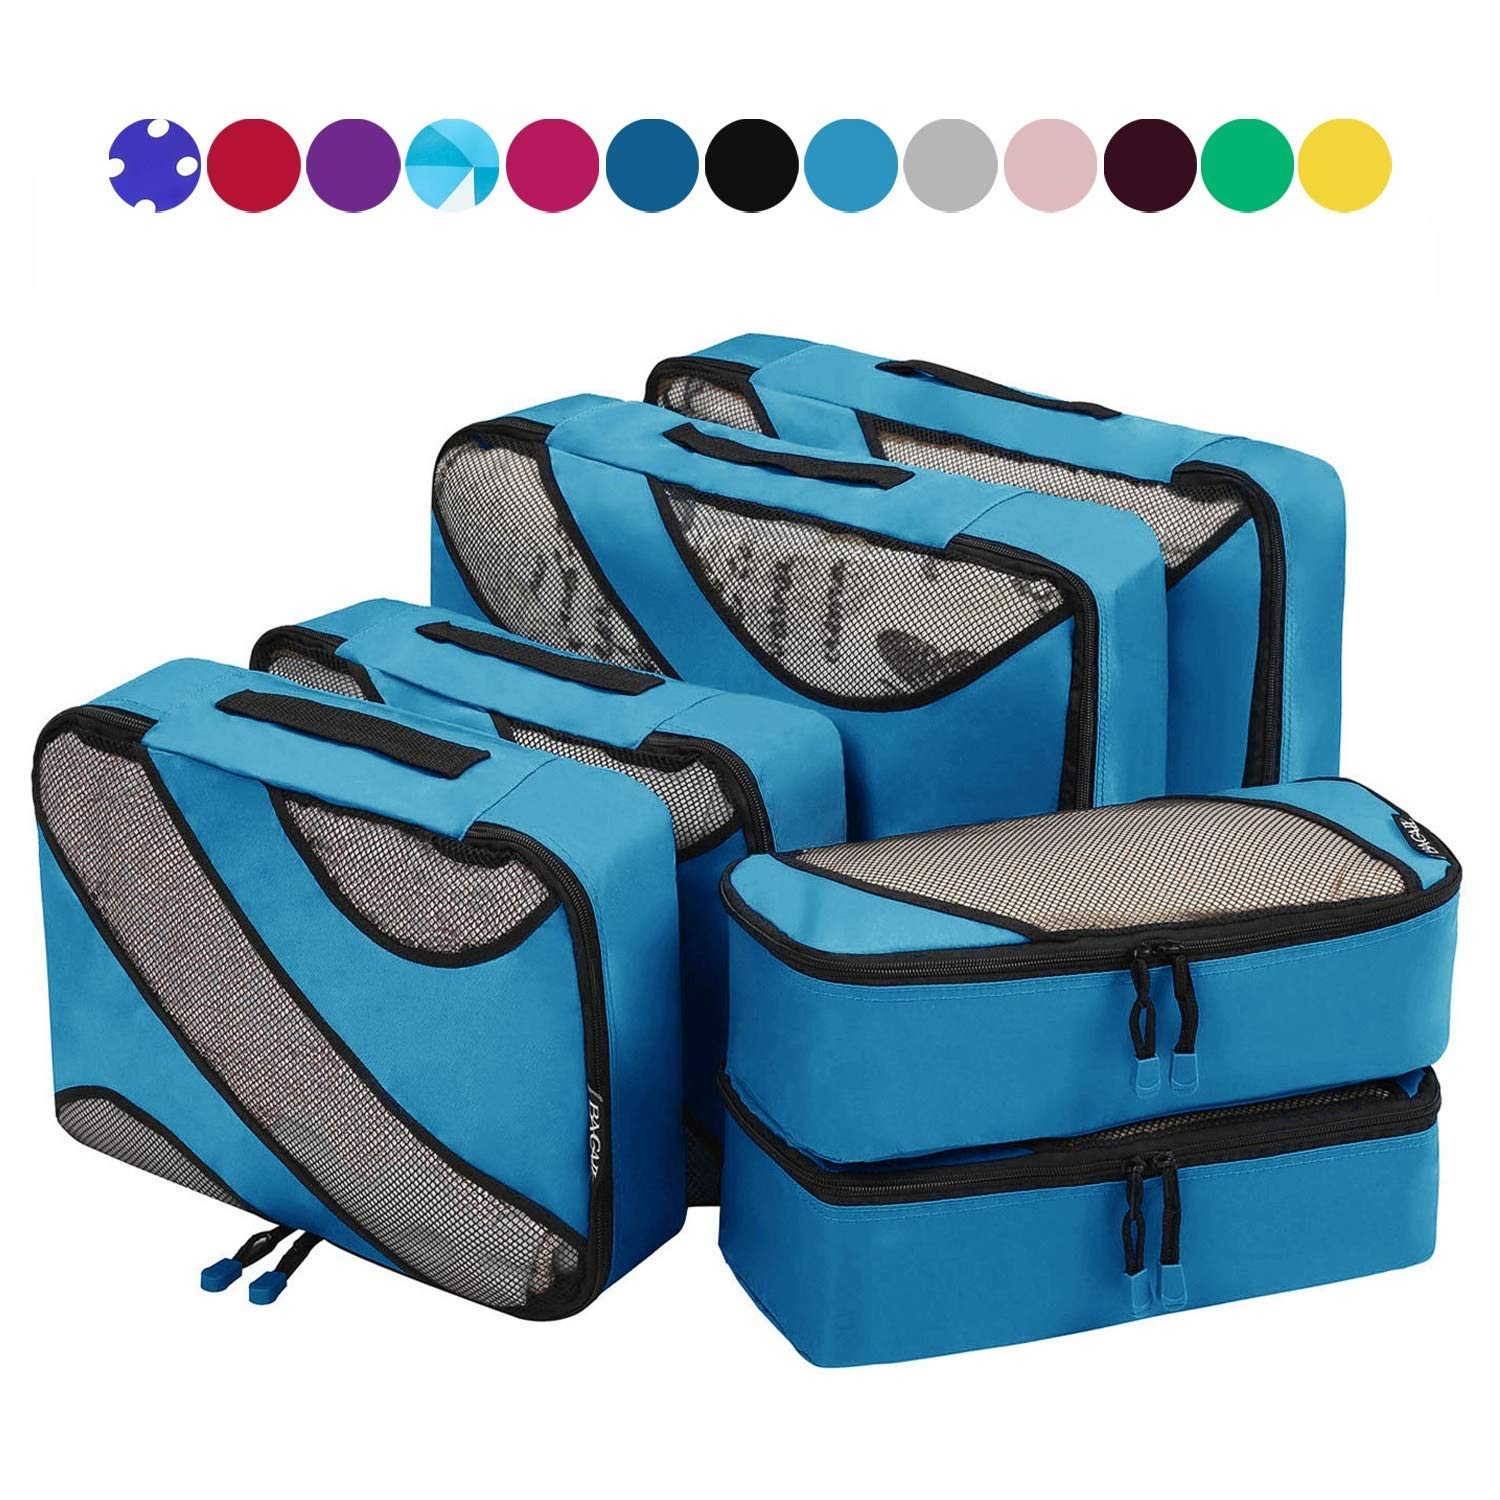 6 Set Packing Cubes,3 Various Sizes Travel Luggage Packing Organizers Blue by BAGAIL (Image #2)